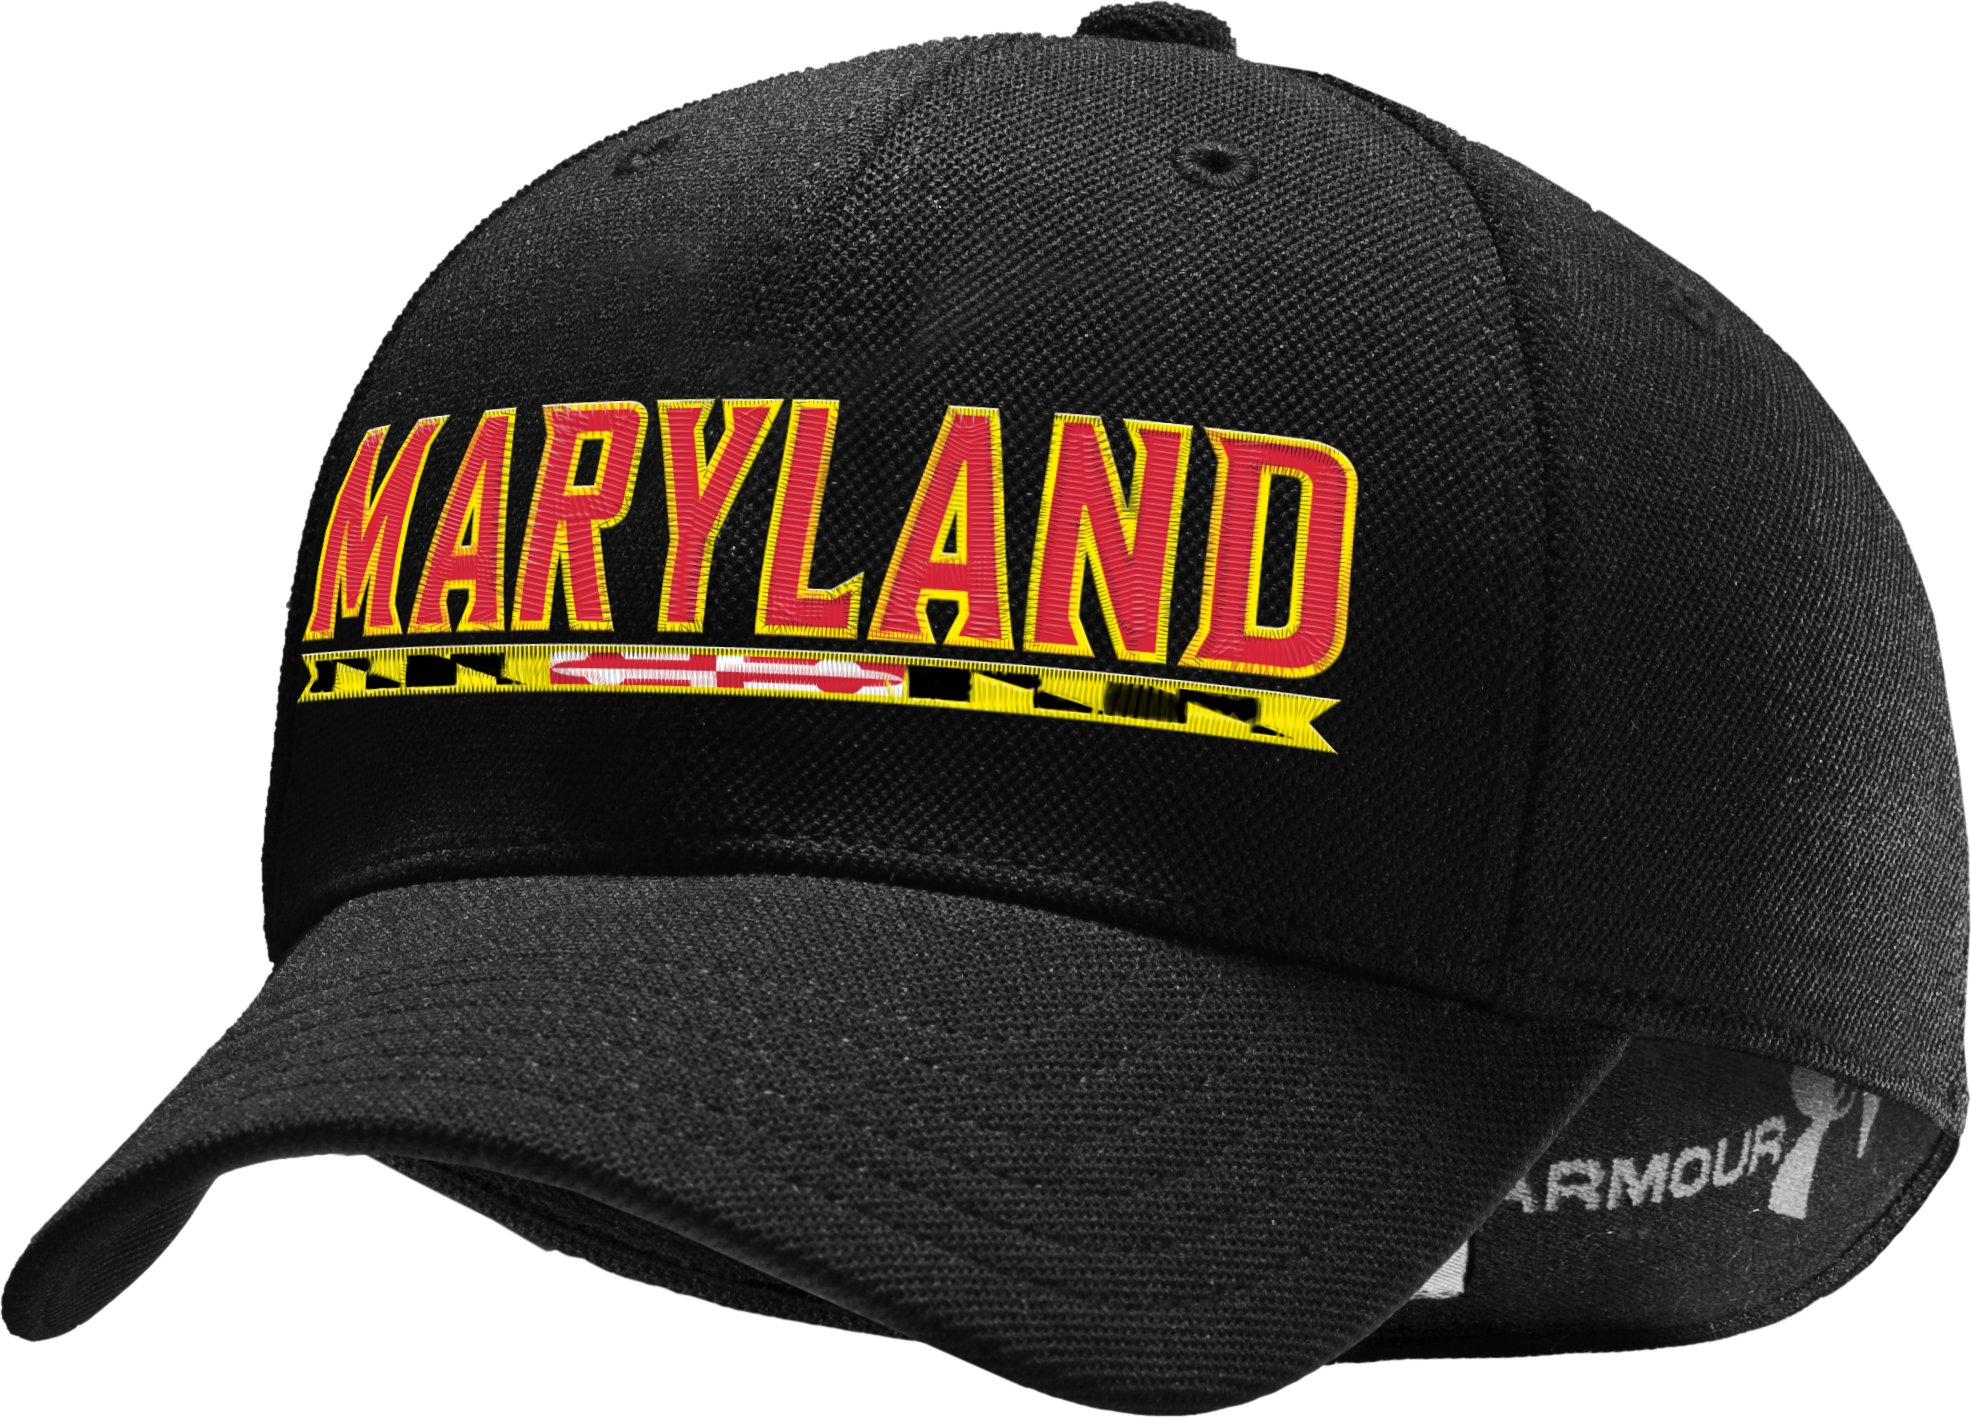 Men's WWP Maryland Stretch Fit Cap, Black